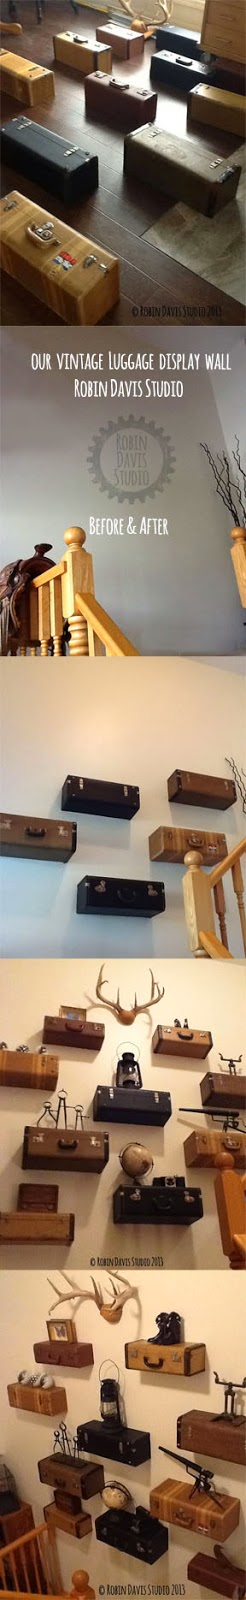 Our Vintage Luggage Wall display we created | Robin Davis Studio